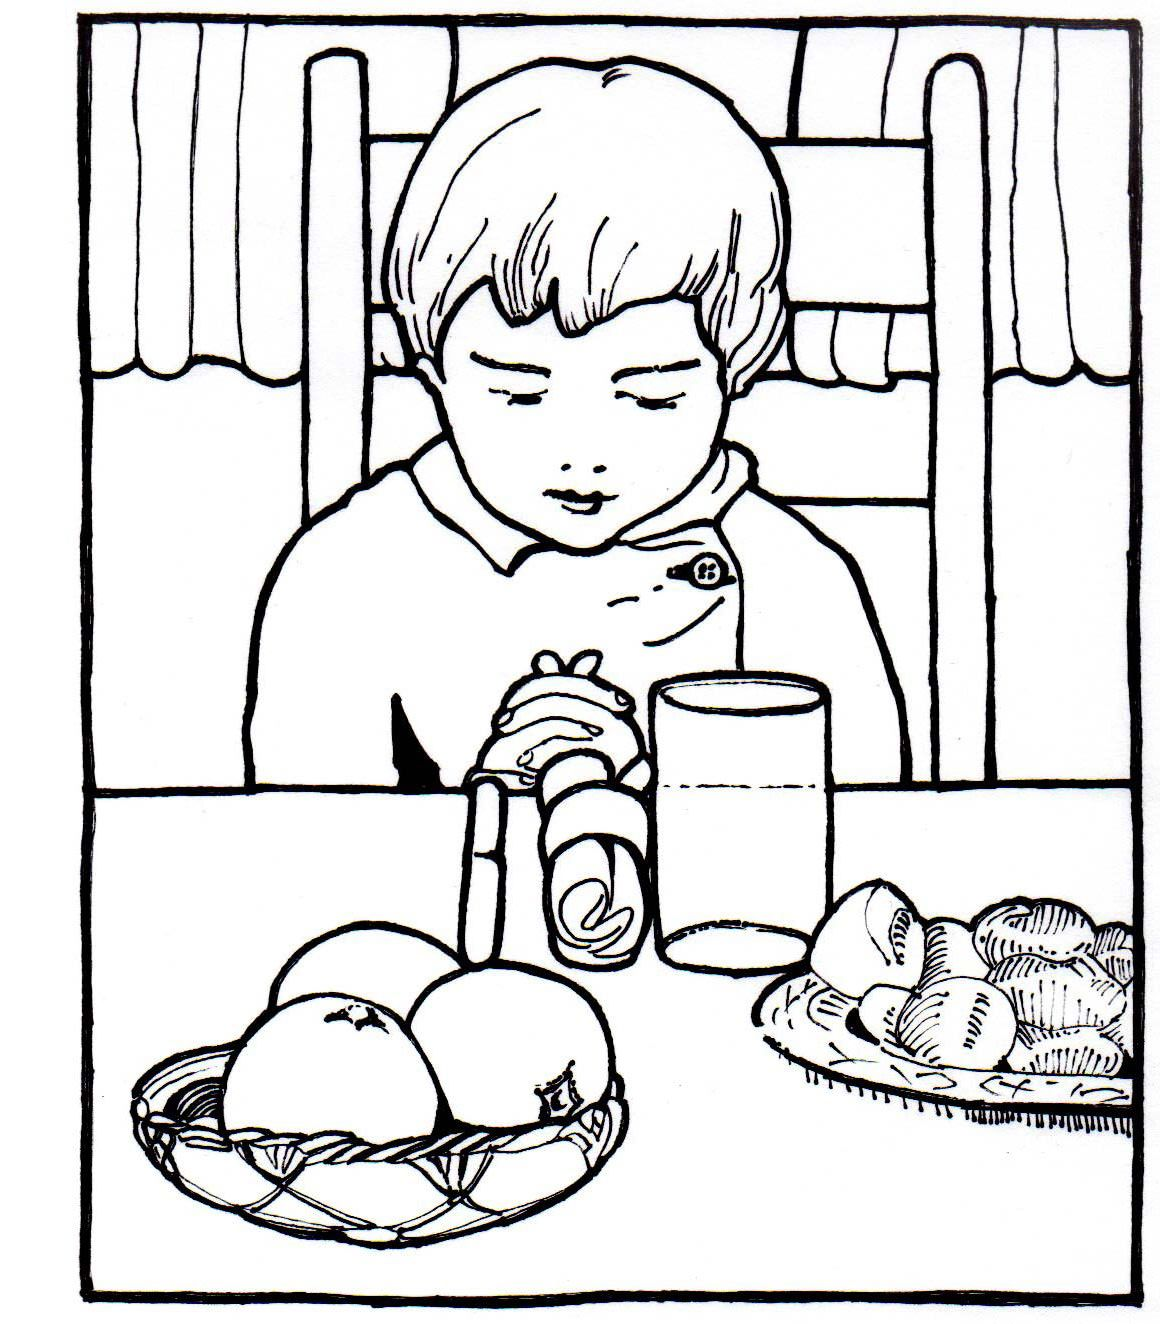 Coloring page of a boy praying grace before a meal story of bible